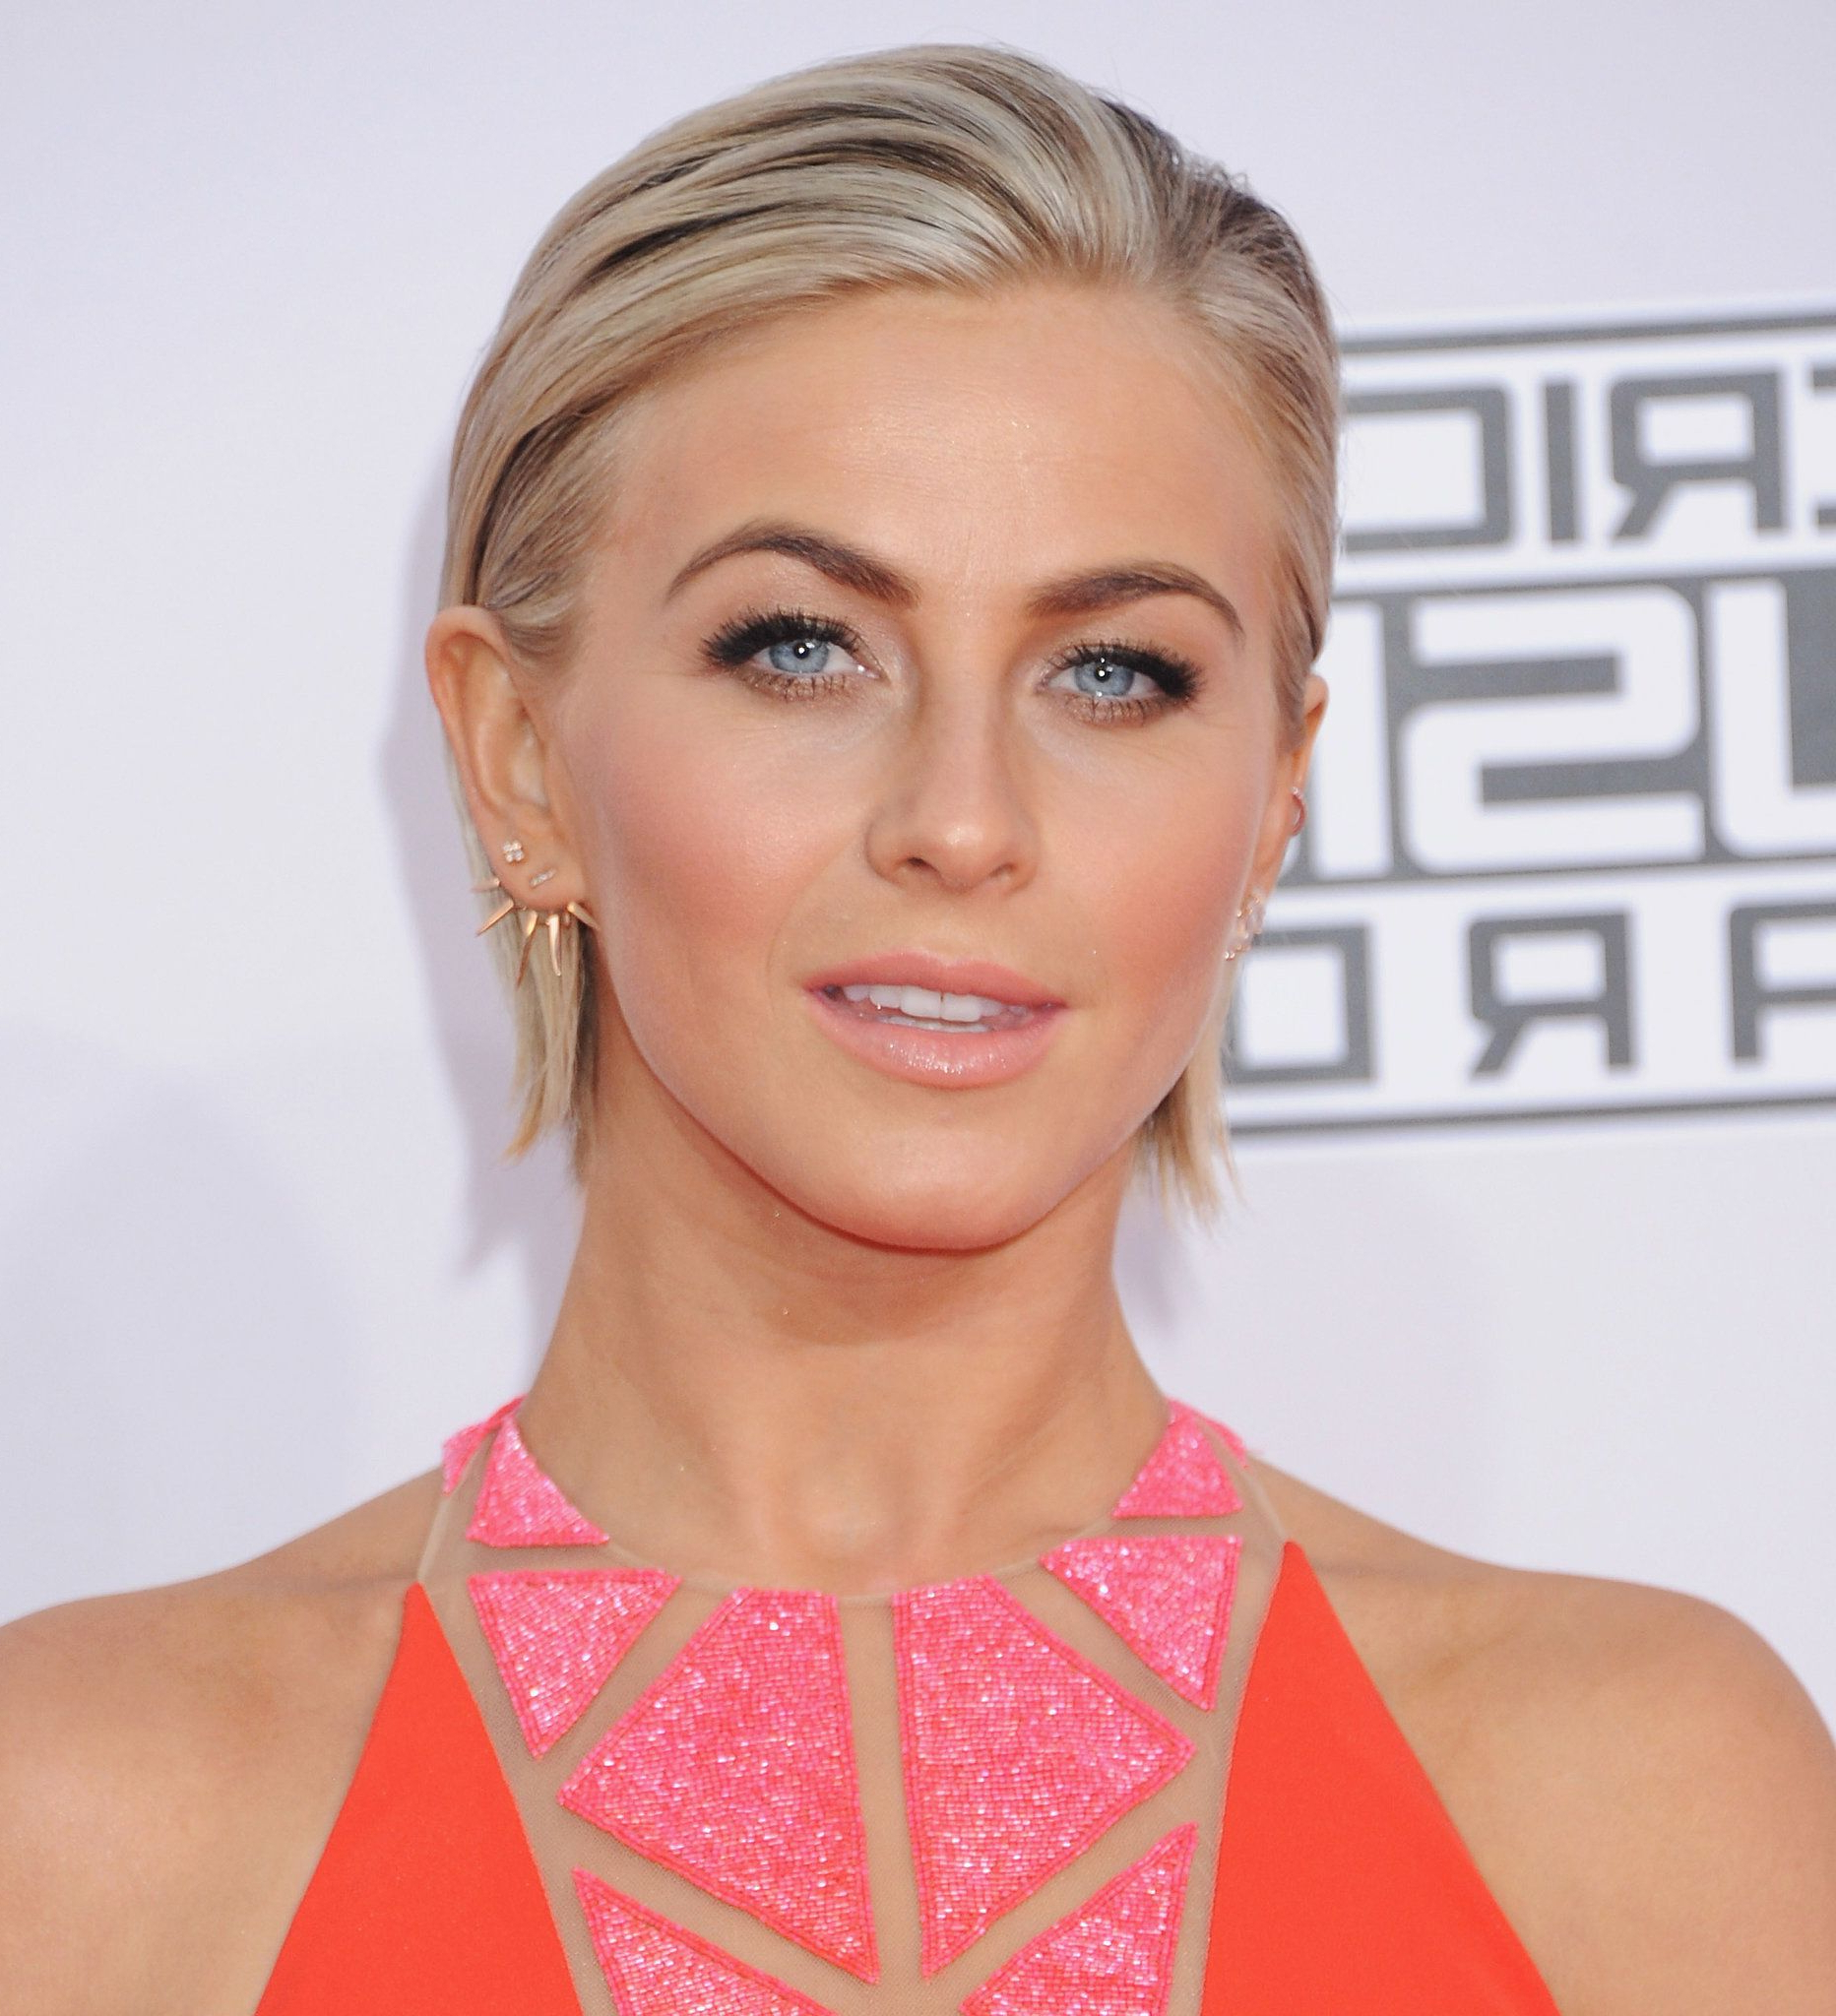 Julianne Hough (View 10 of 20)